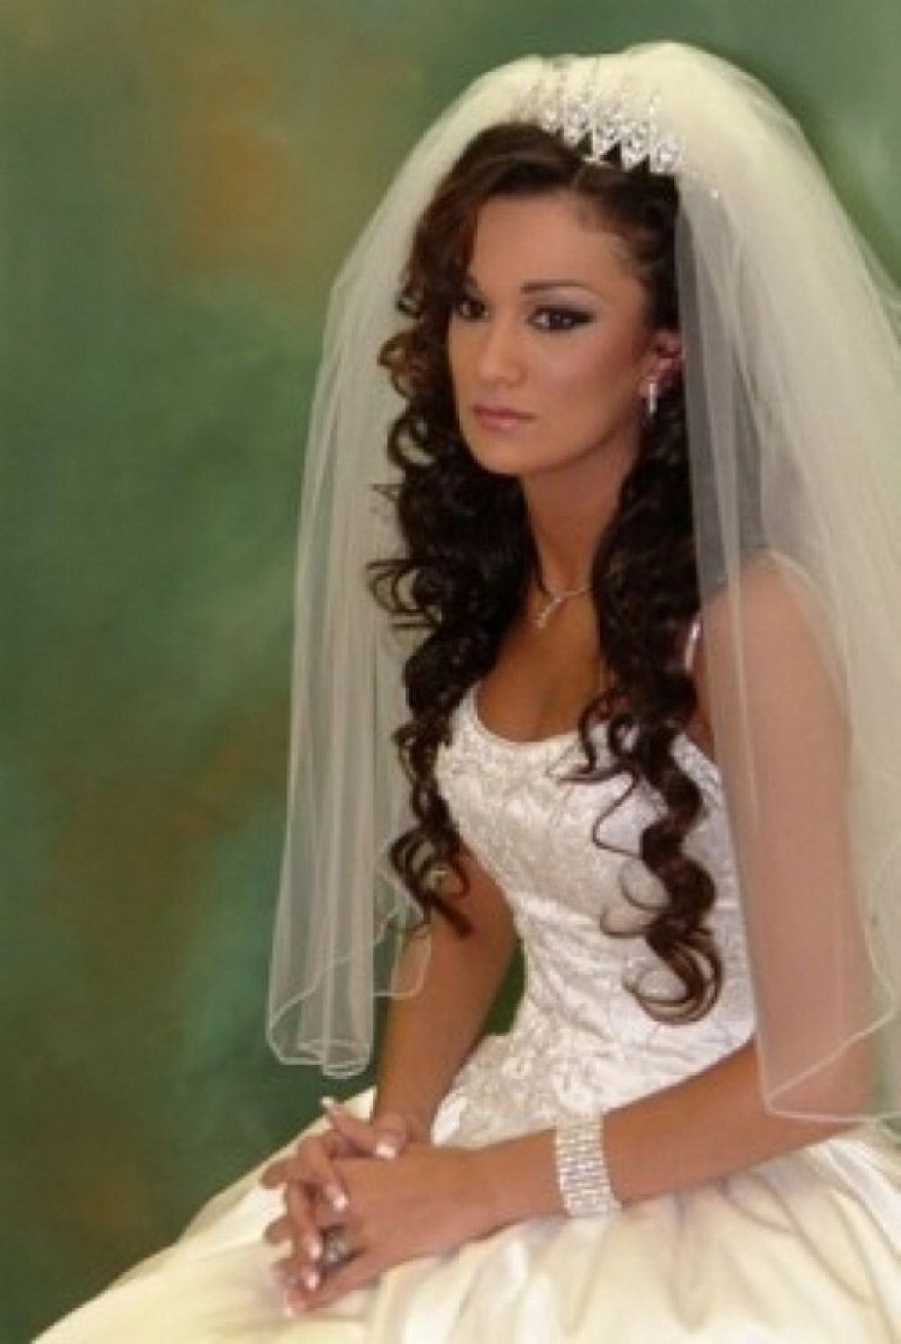 Current Wedding Hairstyles For Long Hair Without Veil Within Wedding Hairstyles Long Hair With Veil (View 12 of 15)